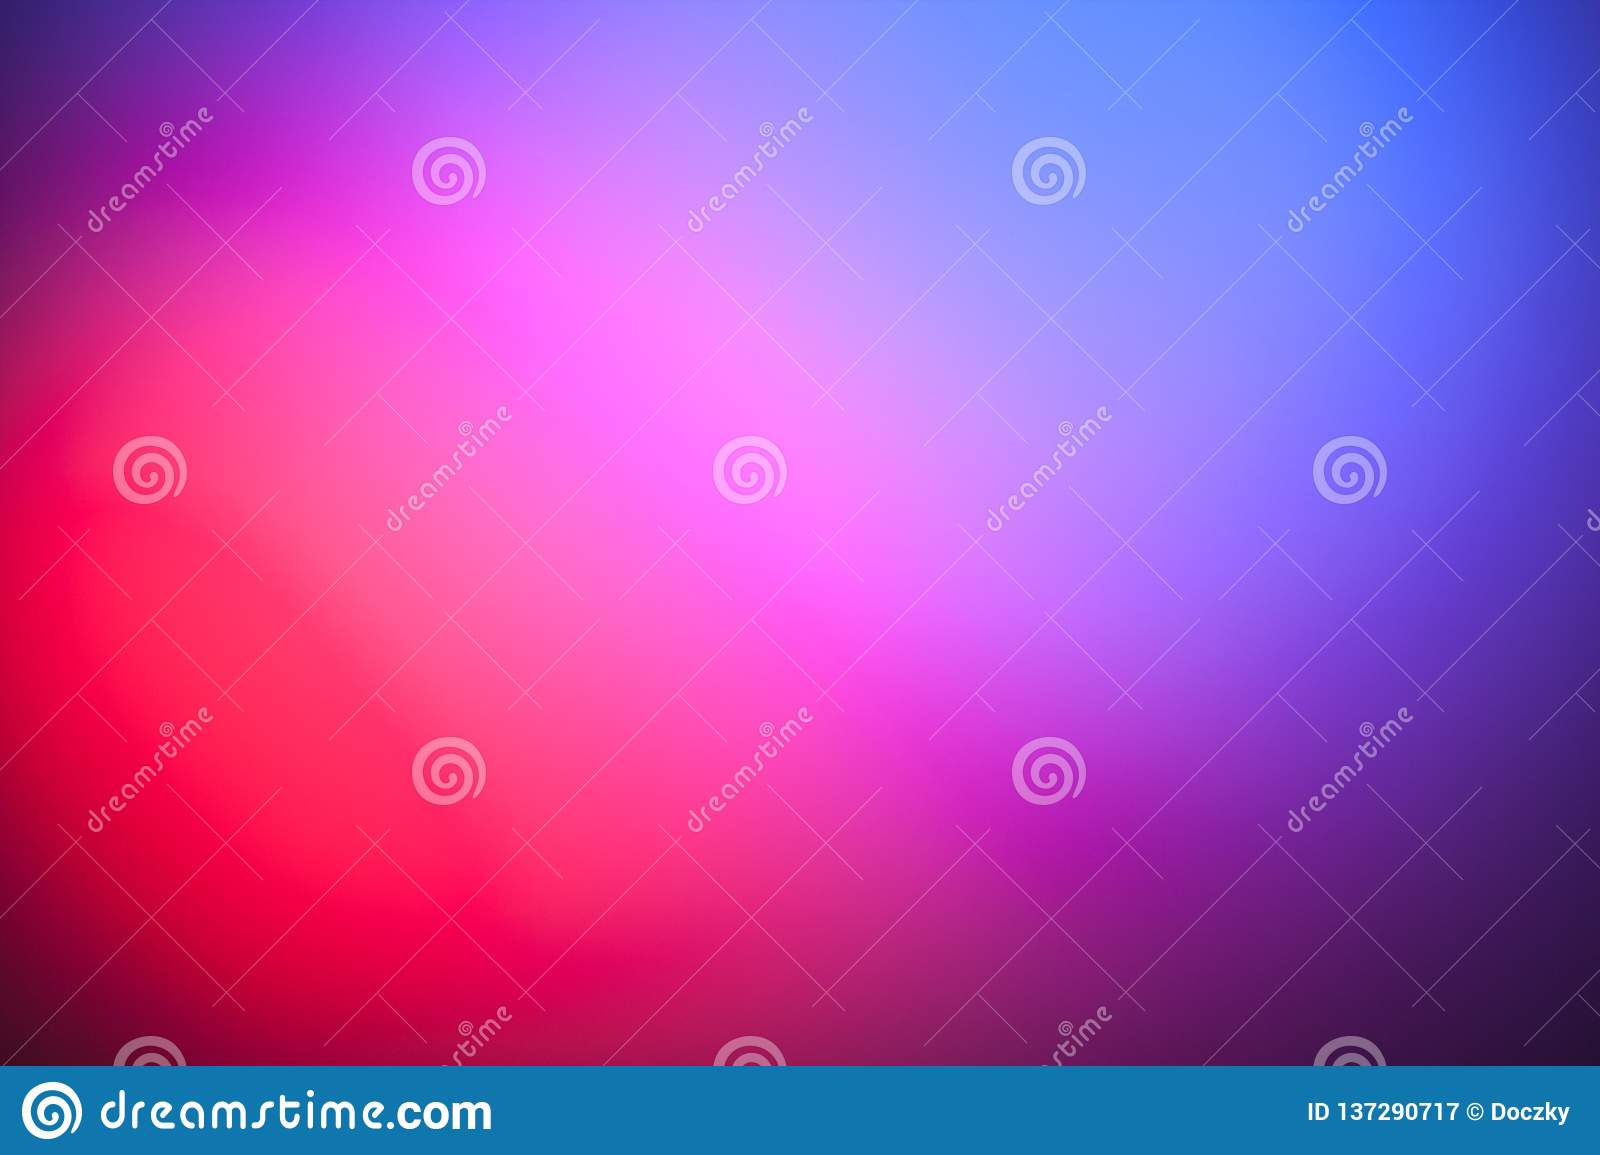 Pink, blue, and purple abstract background